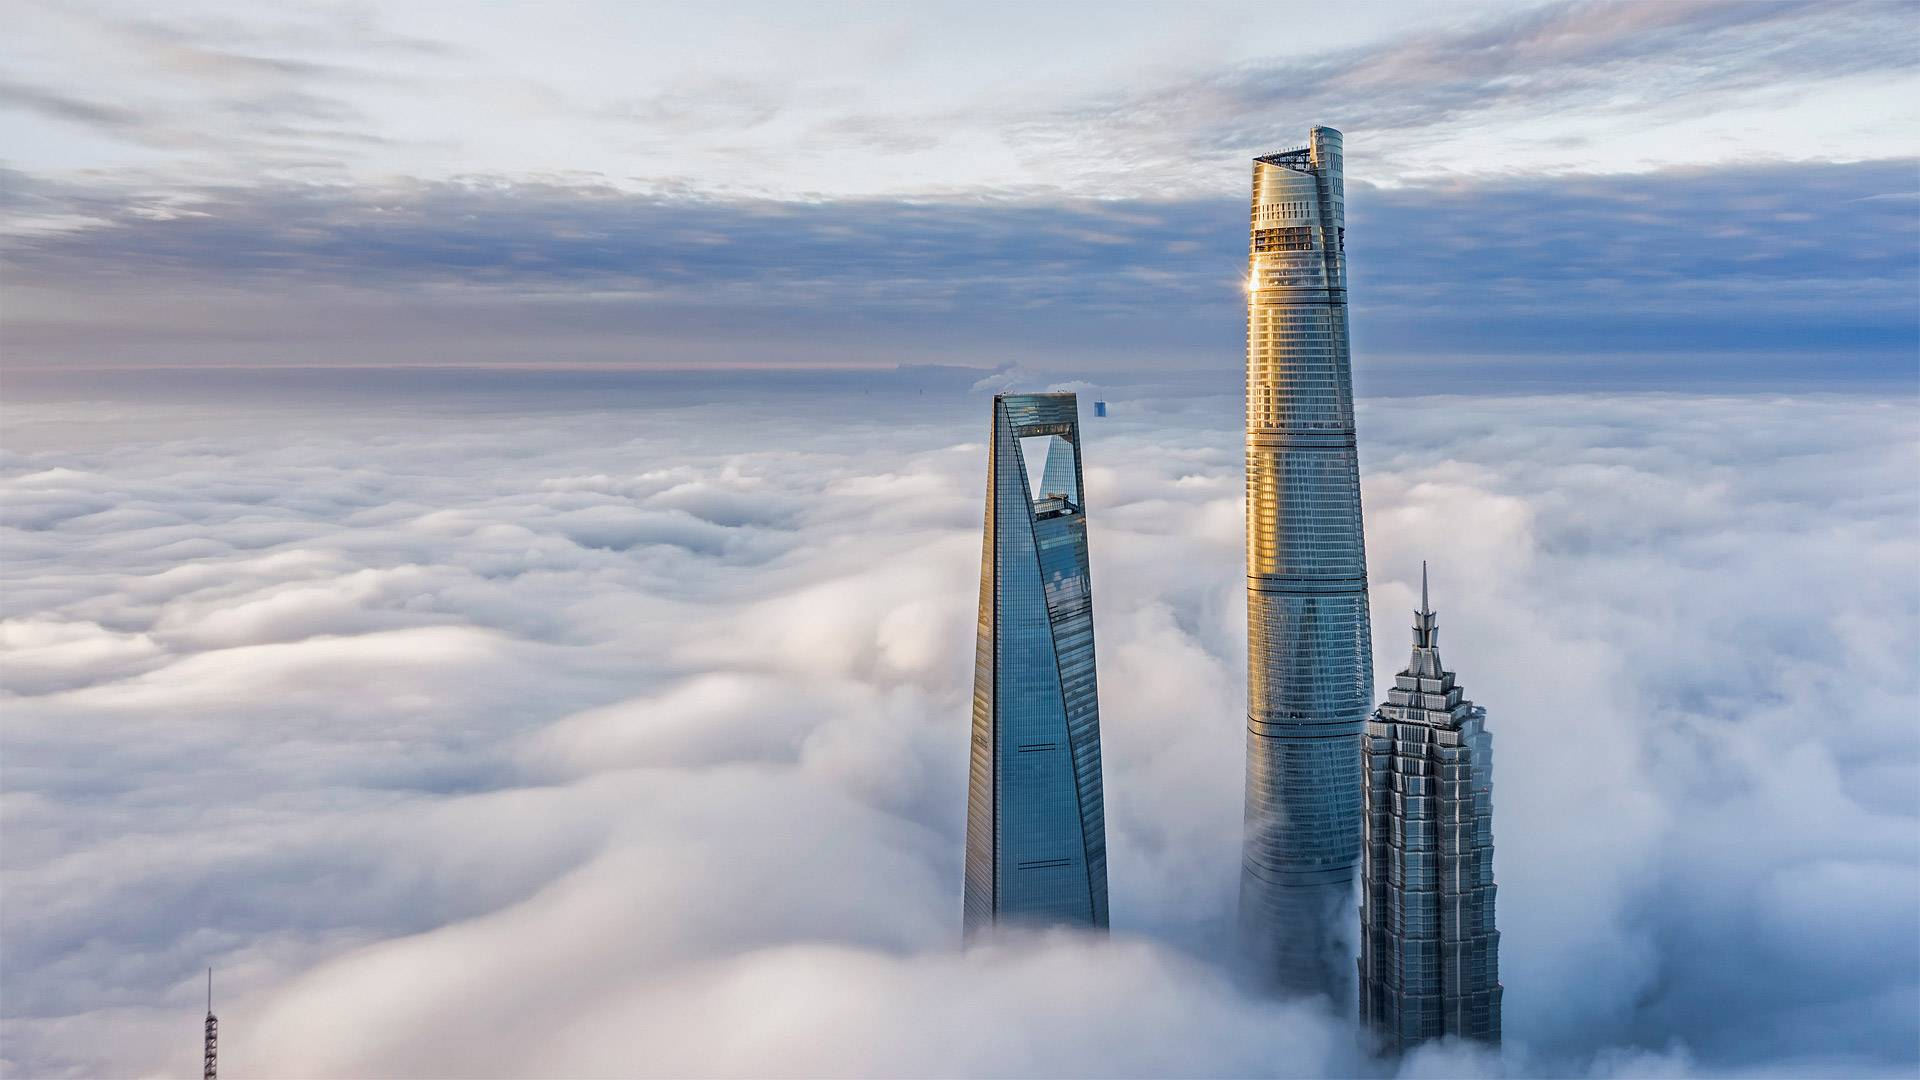 General 1920x1080 Bing photography nature Shanghai clouds